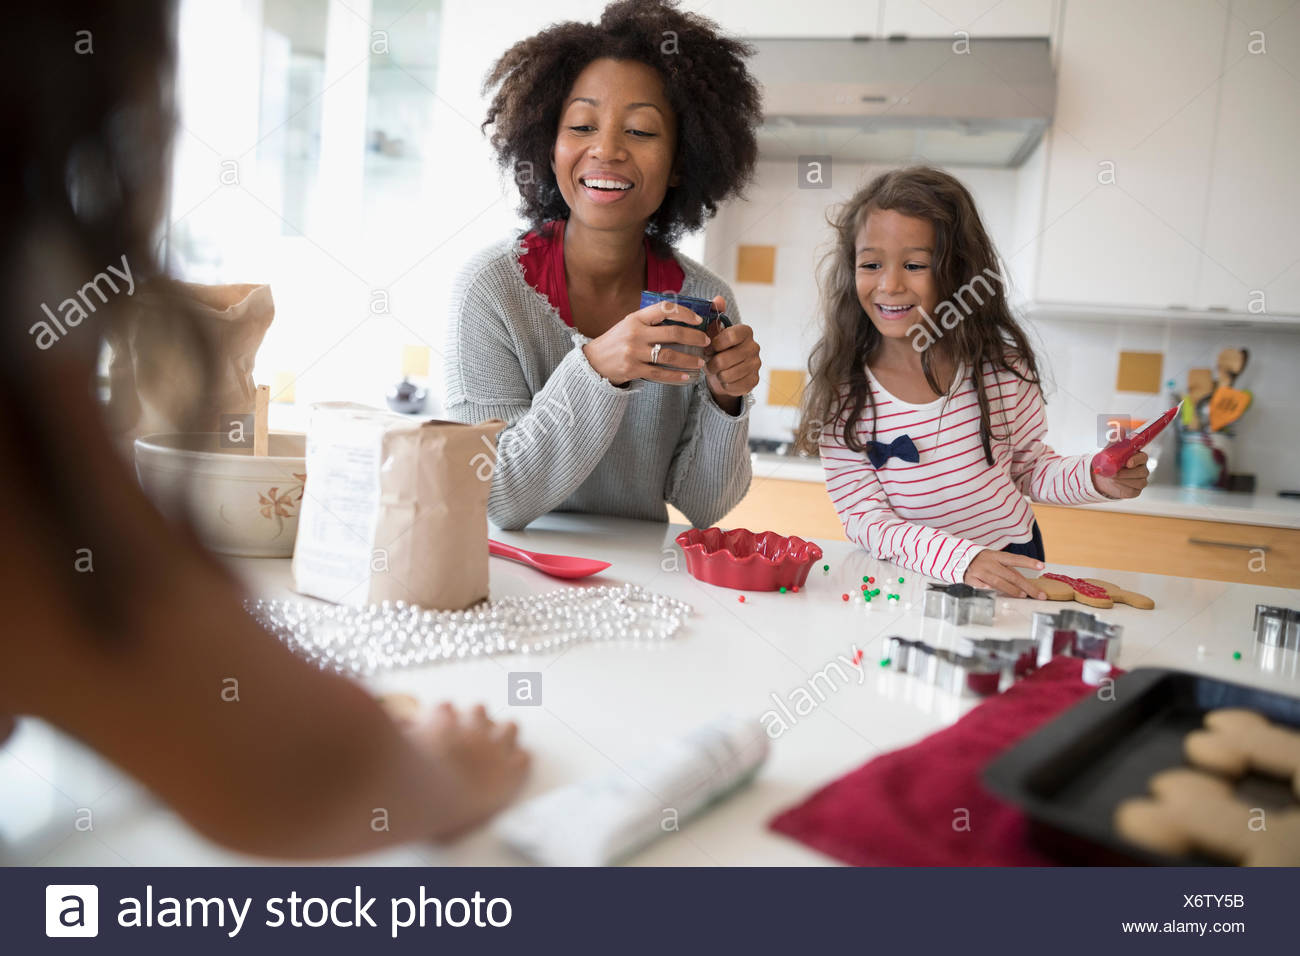 Mother and daughters decorating Christmas gingerbread cookies in kitchen - Stock Image